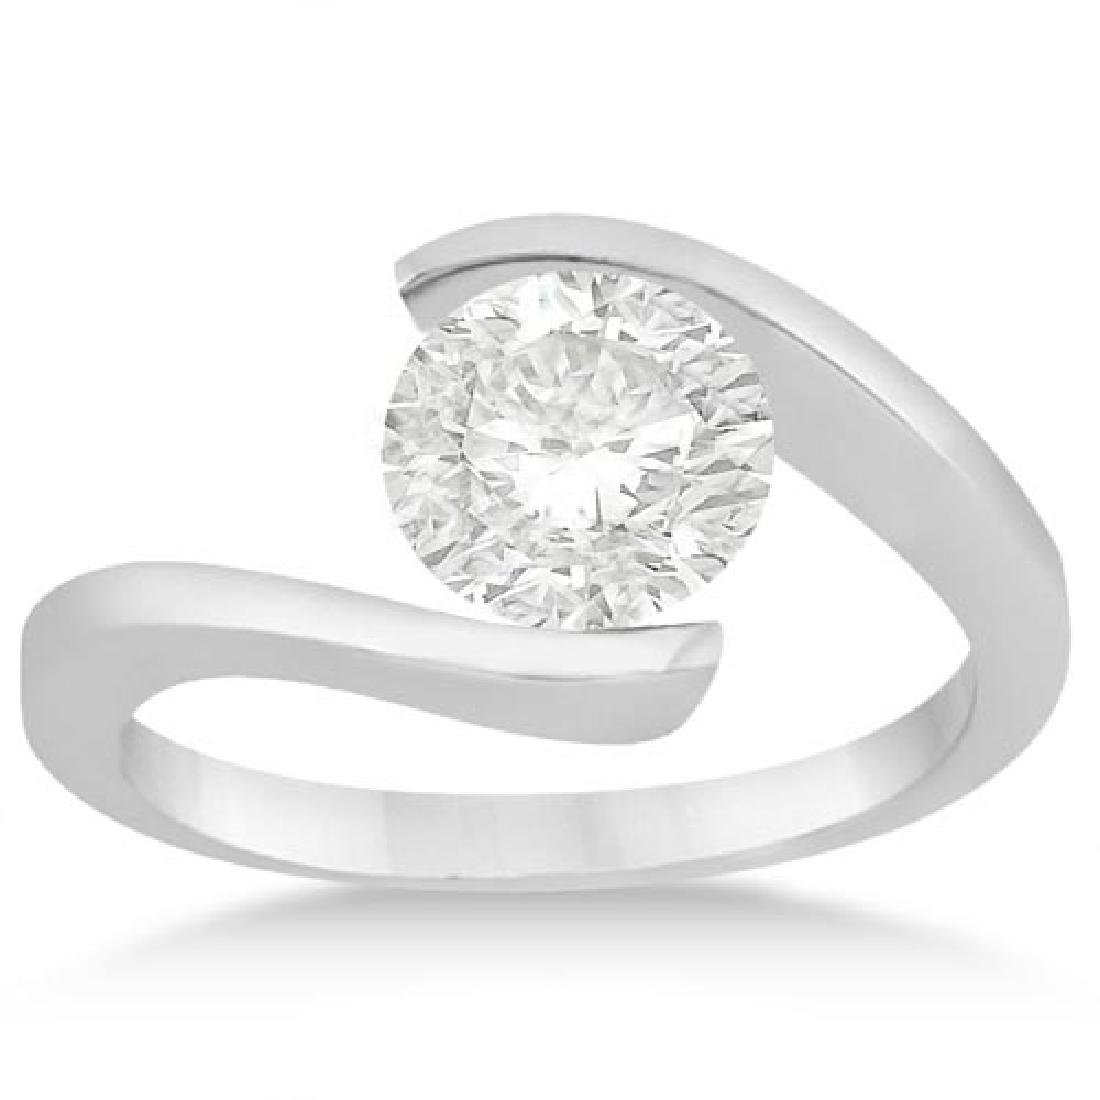 1.25 ctw Tension Set Swirl Solitaire Engagement Ring Pl